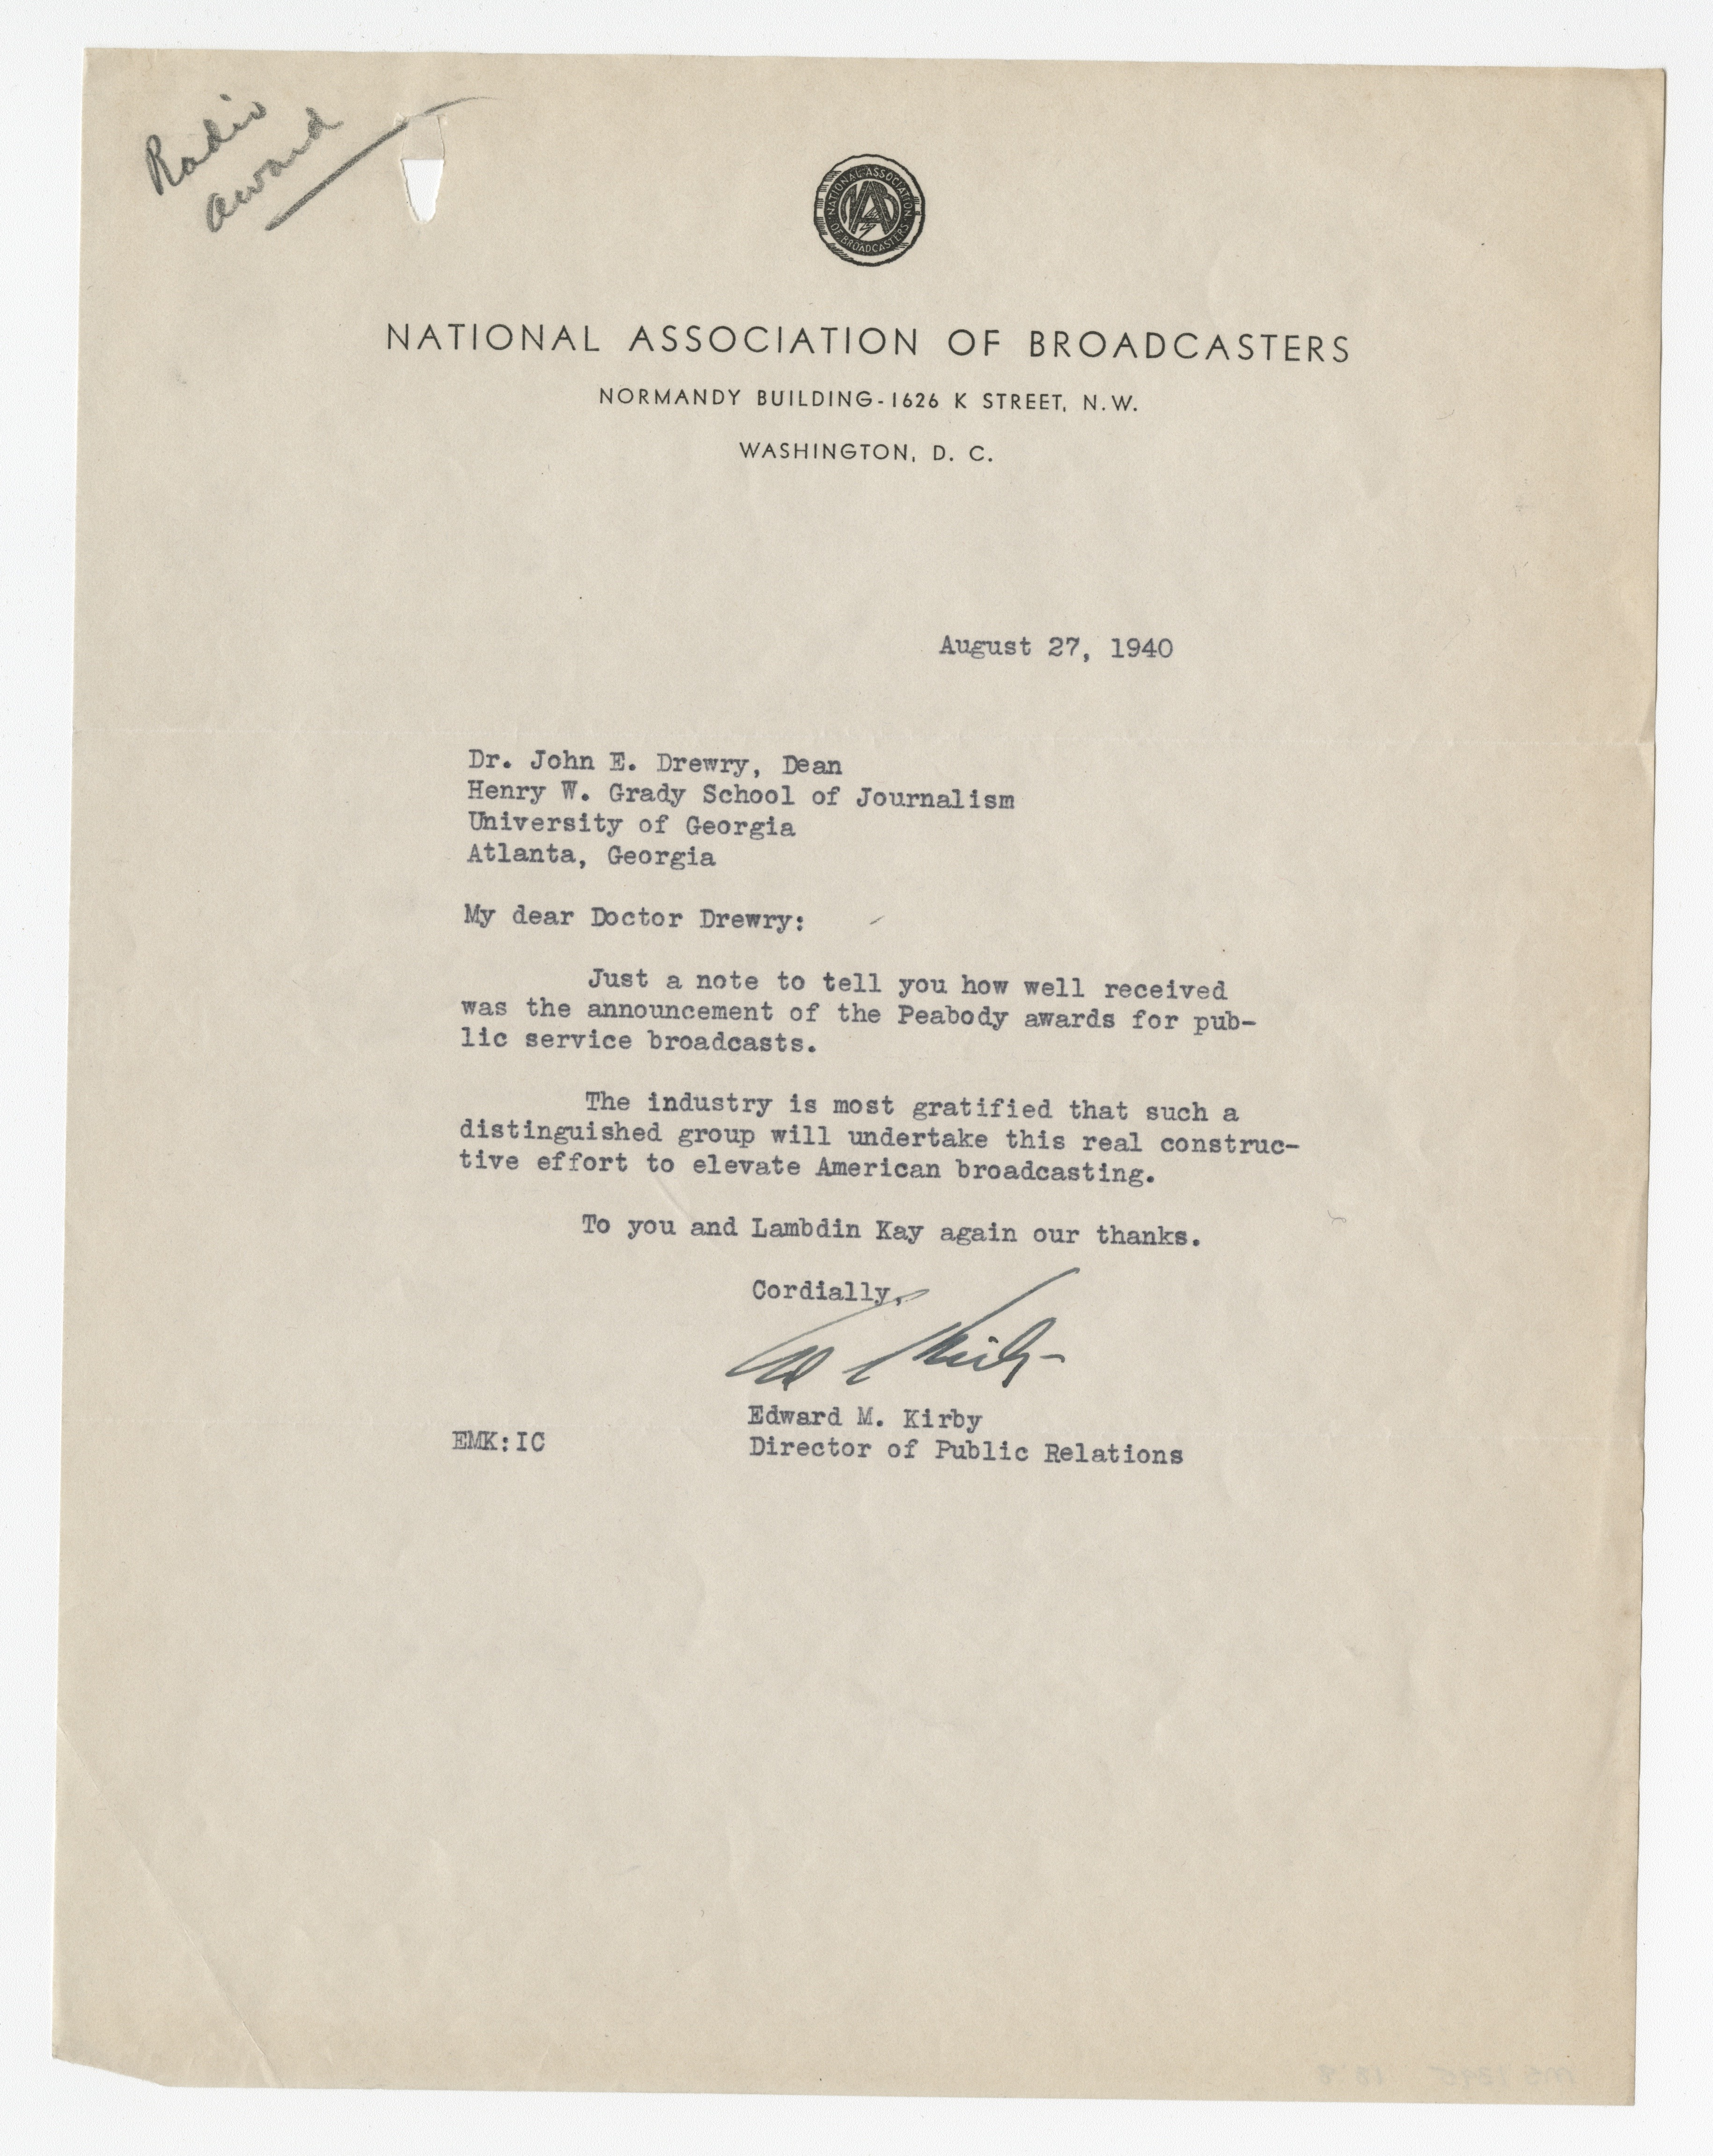 Letter from the National Association of Broadcasters to Drewry, George Foster Peabody Awards records, ms3000, Hargrett Rare Book and Manuscript Library, University of Georgia Libraries.